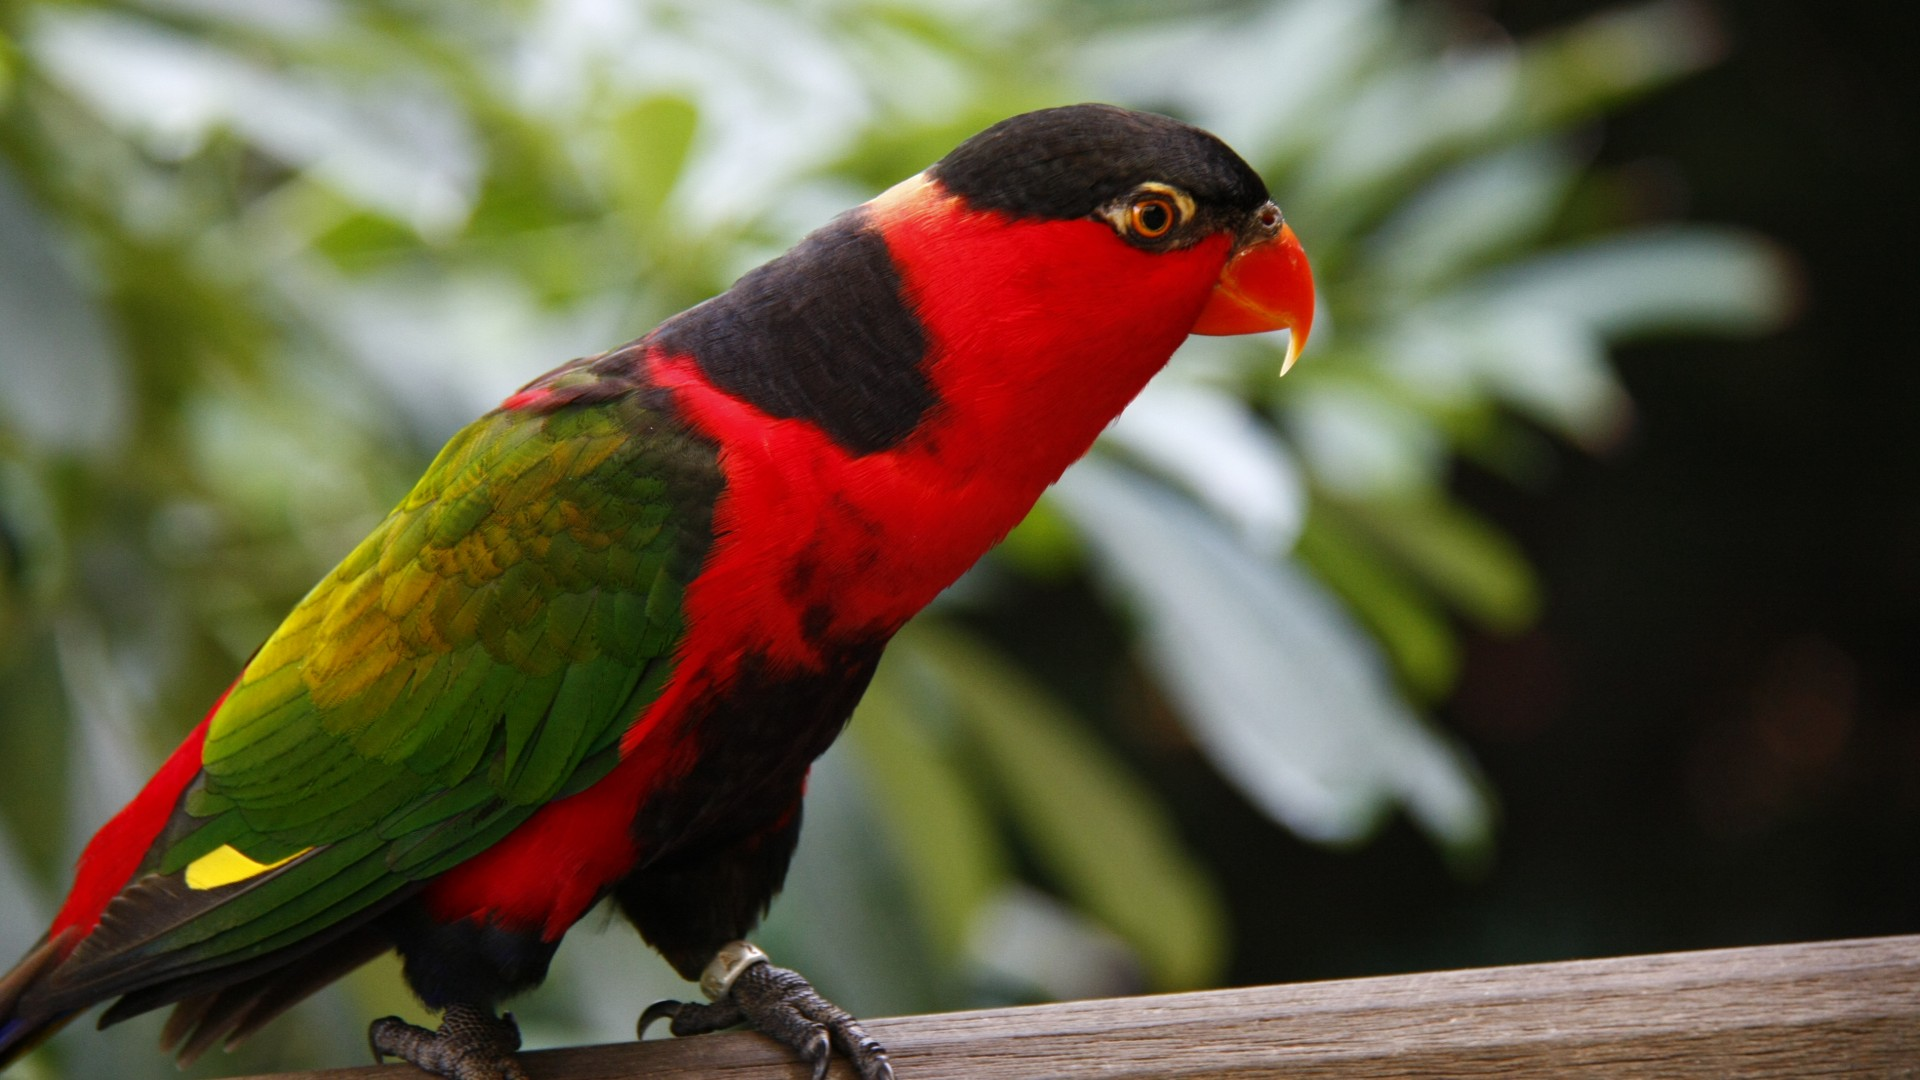 Parrot, Jurong Bird Park, tourism, bird, animal, nature, red, green (horizontal)